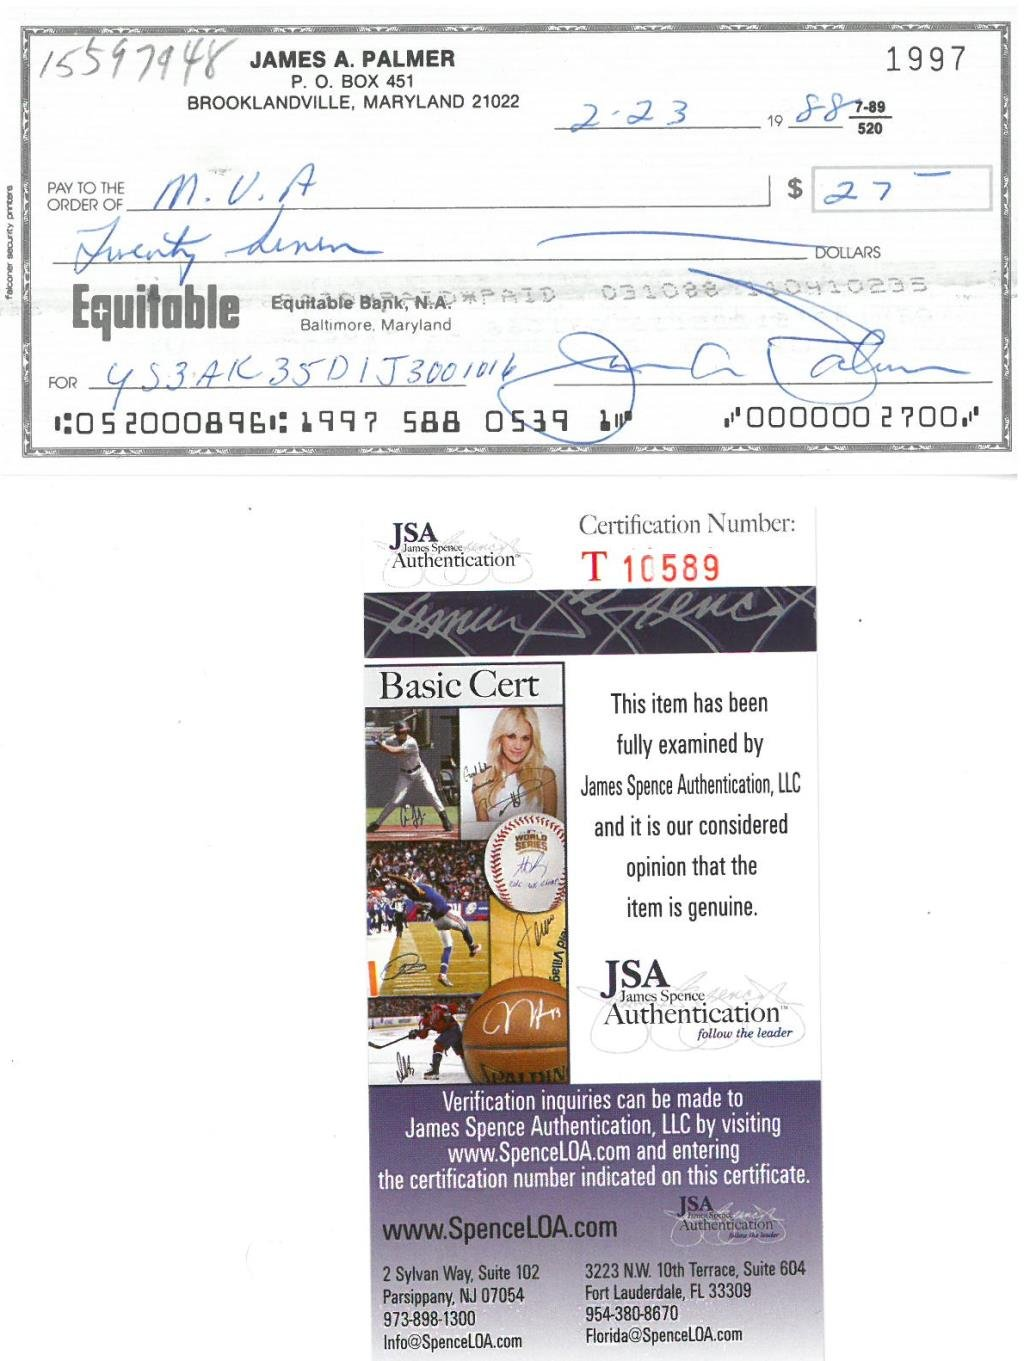 Jim Palmer Signed Authentic Autographed Cancelled Check JSA #T10589